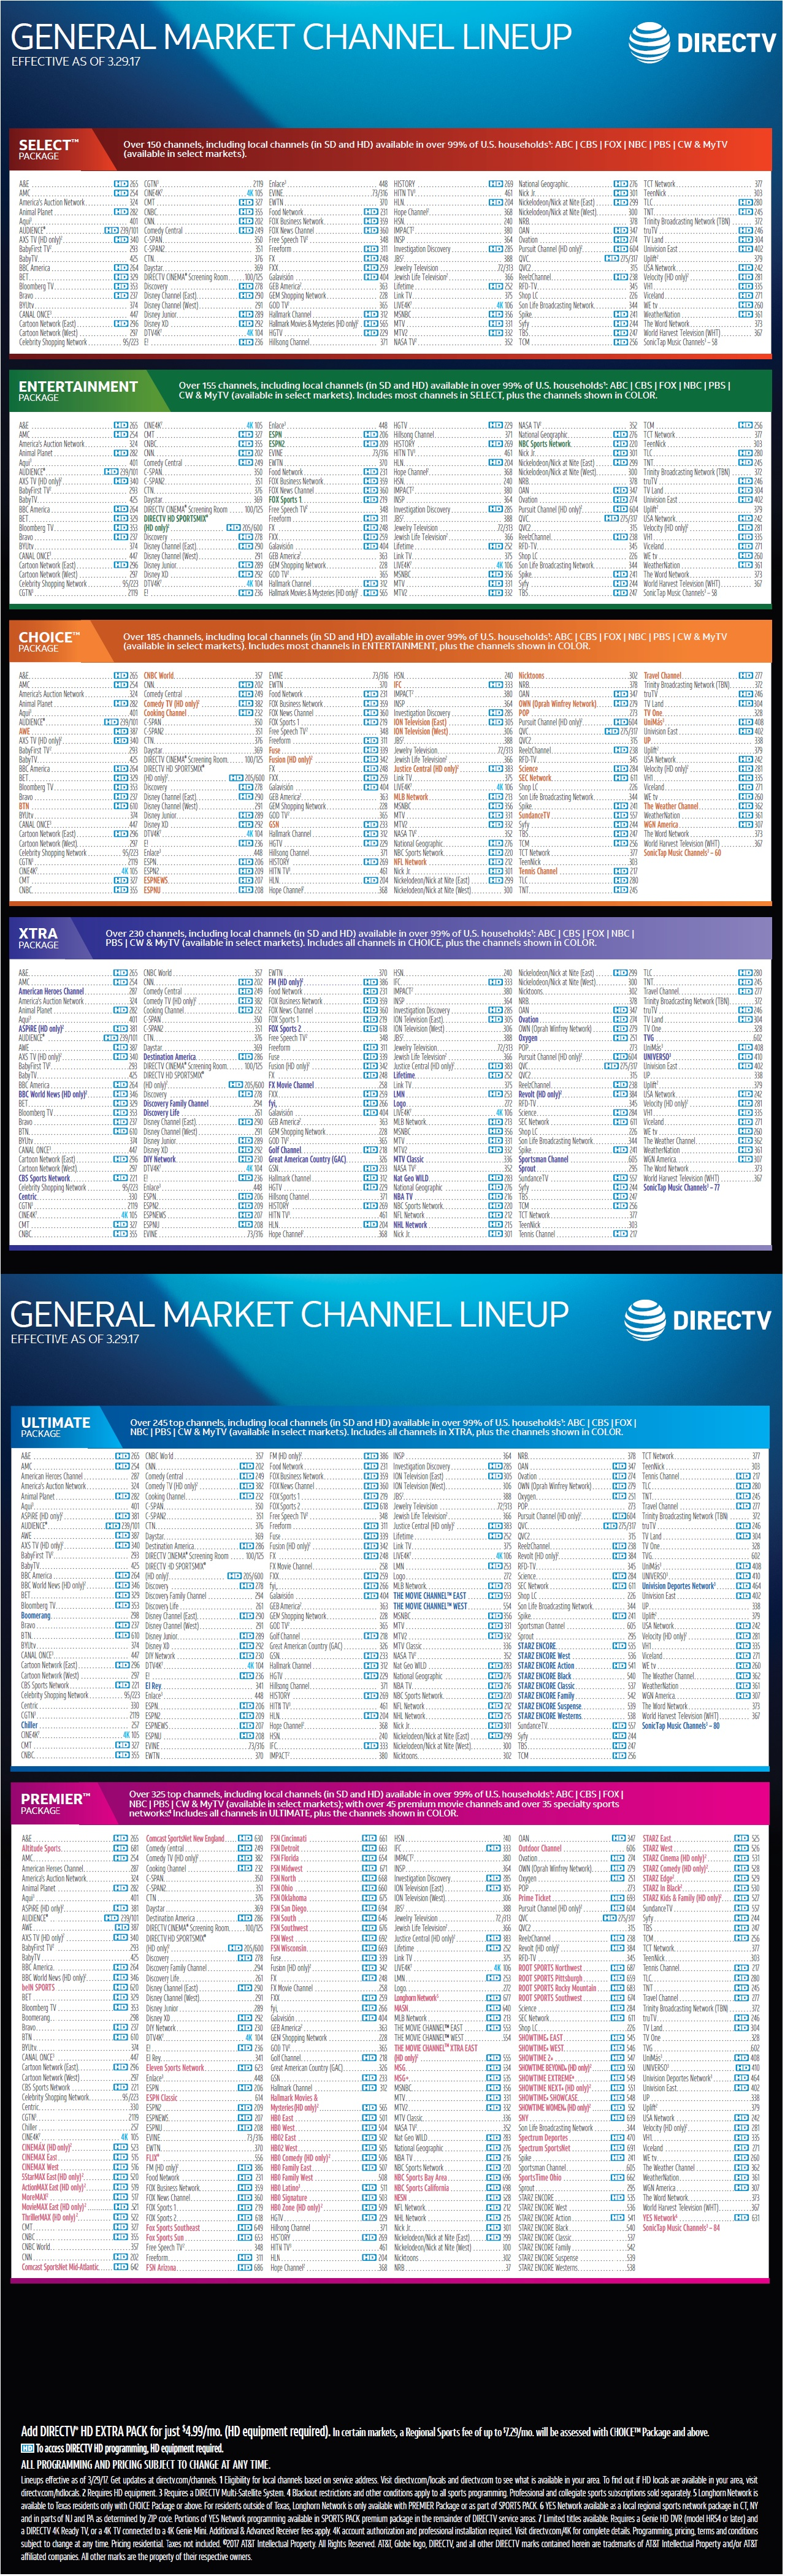 Sizzling image in printable directv now channel guide